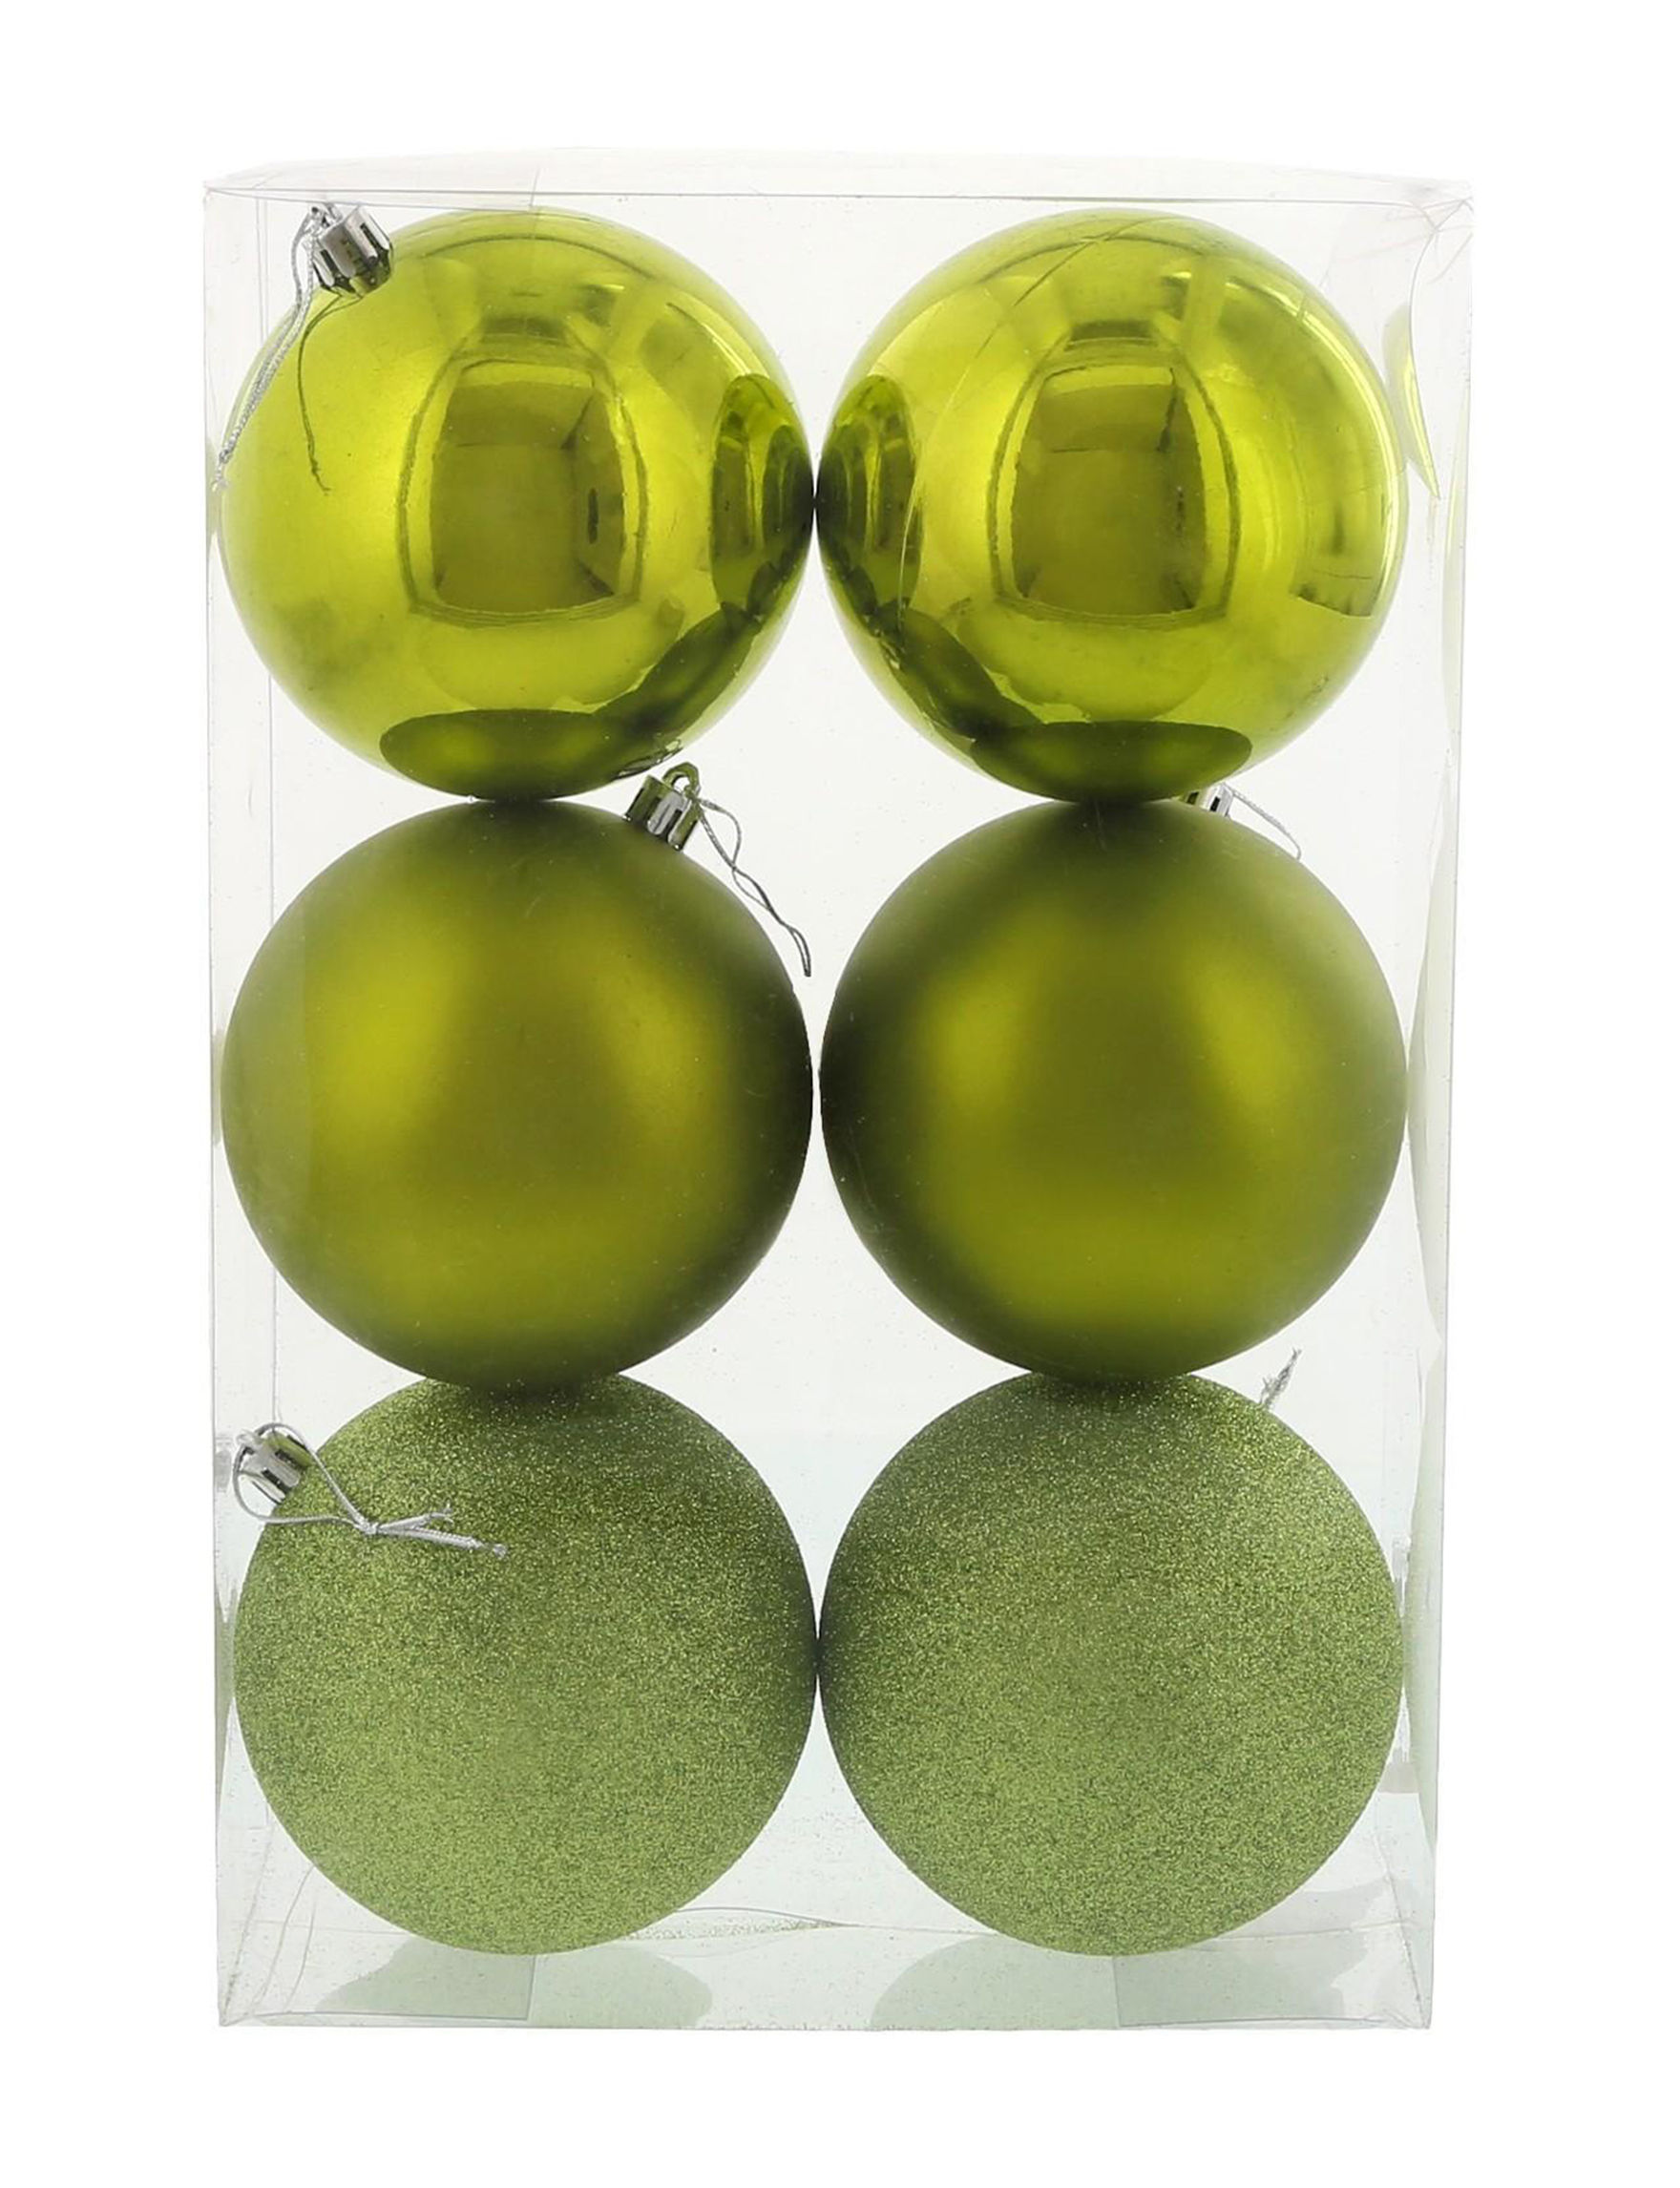 BuySeasons Green Decorative Objects Ornaments Holiday Decor